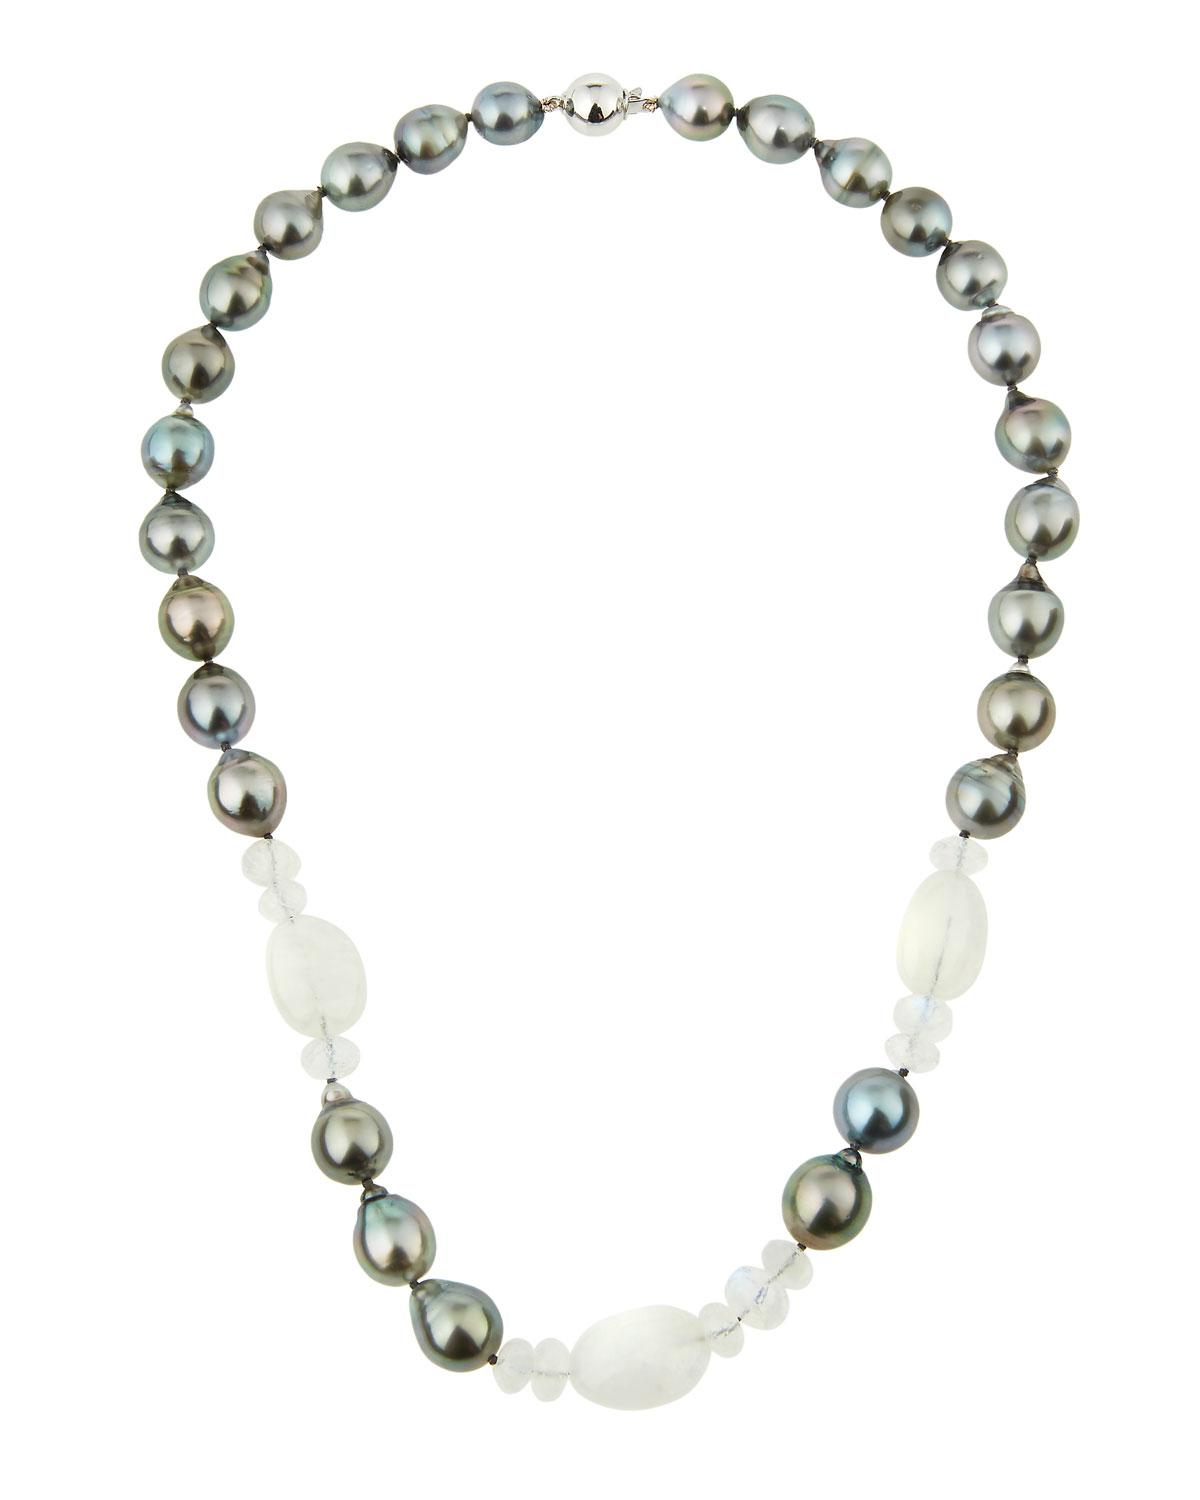 Belpearl Black Tahitian Pearl & Moonstone Station Necklace in 18K White Gold 5RoUdmk9